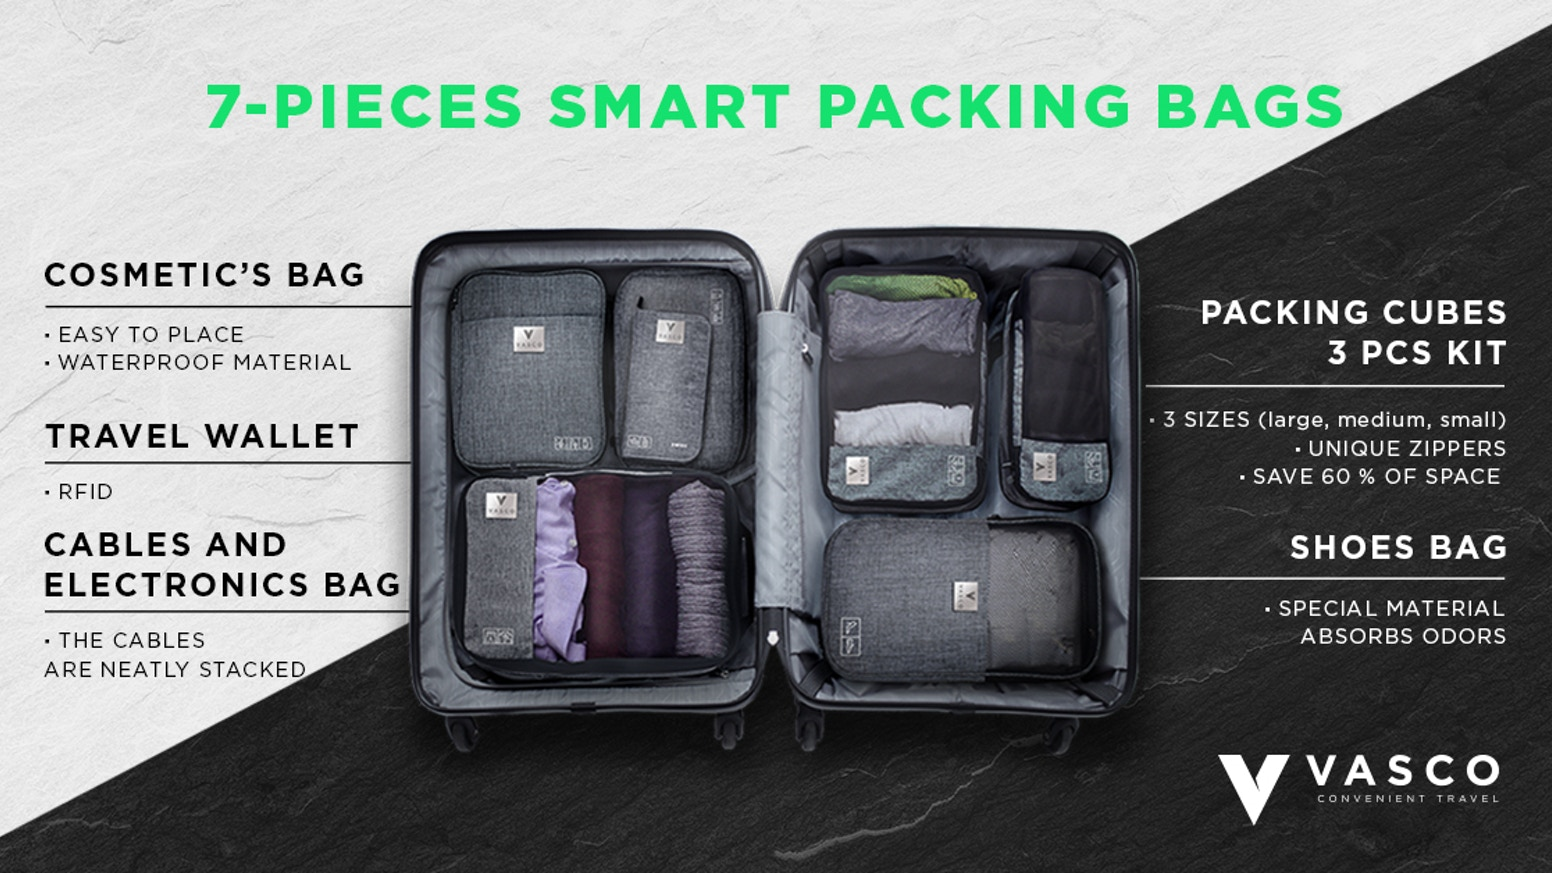 7 most functional bags and packing cubes that will make your trip incredibly easy